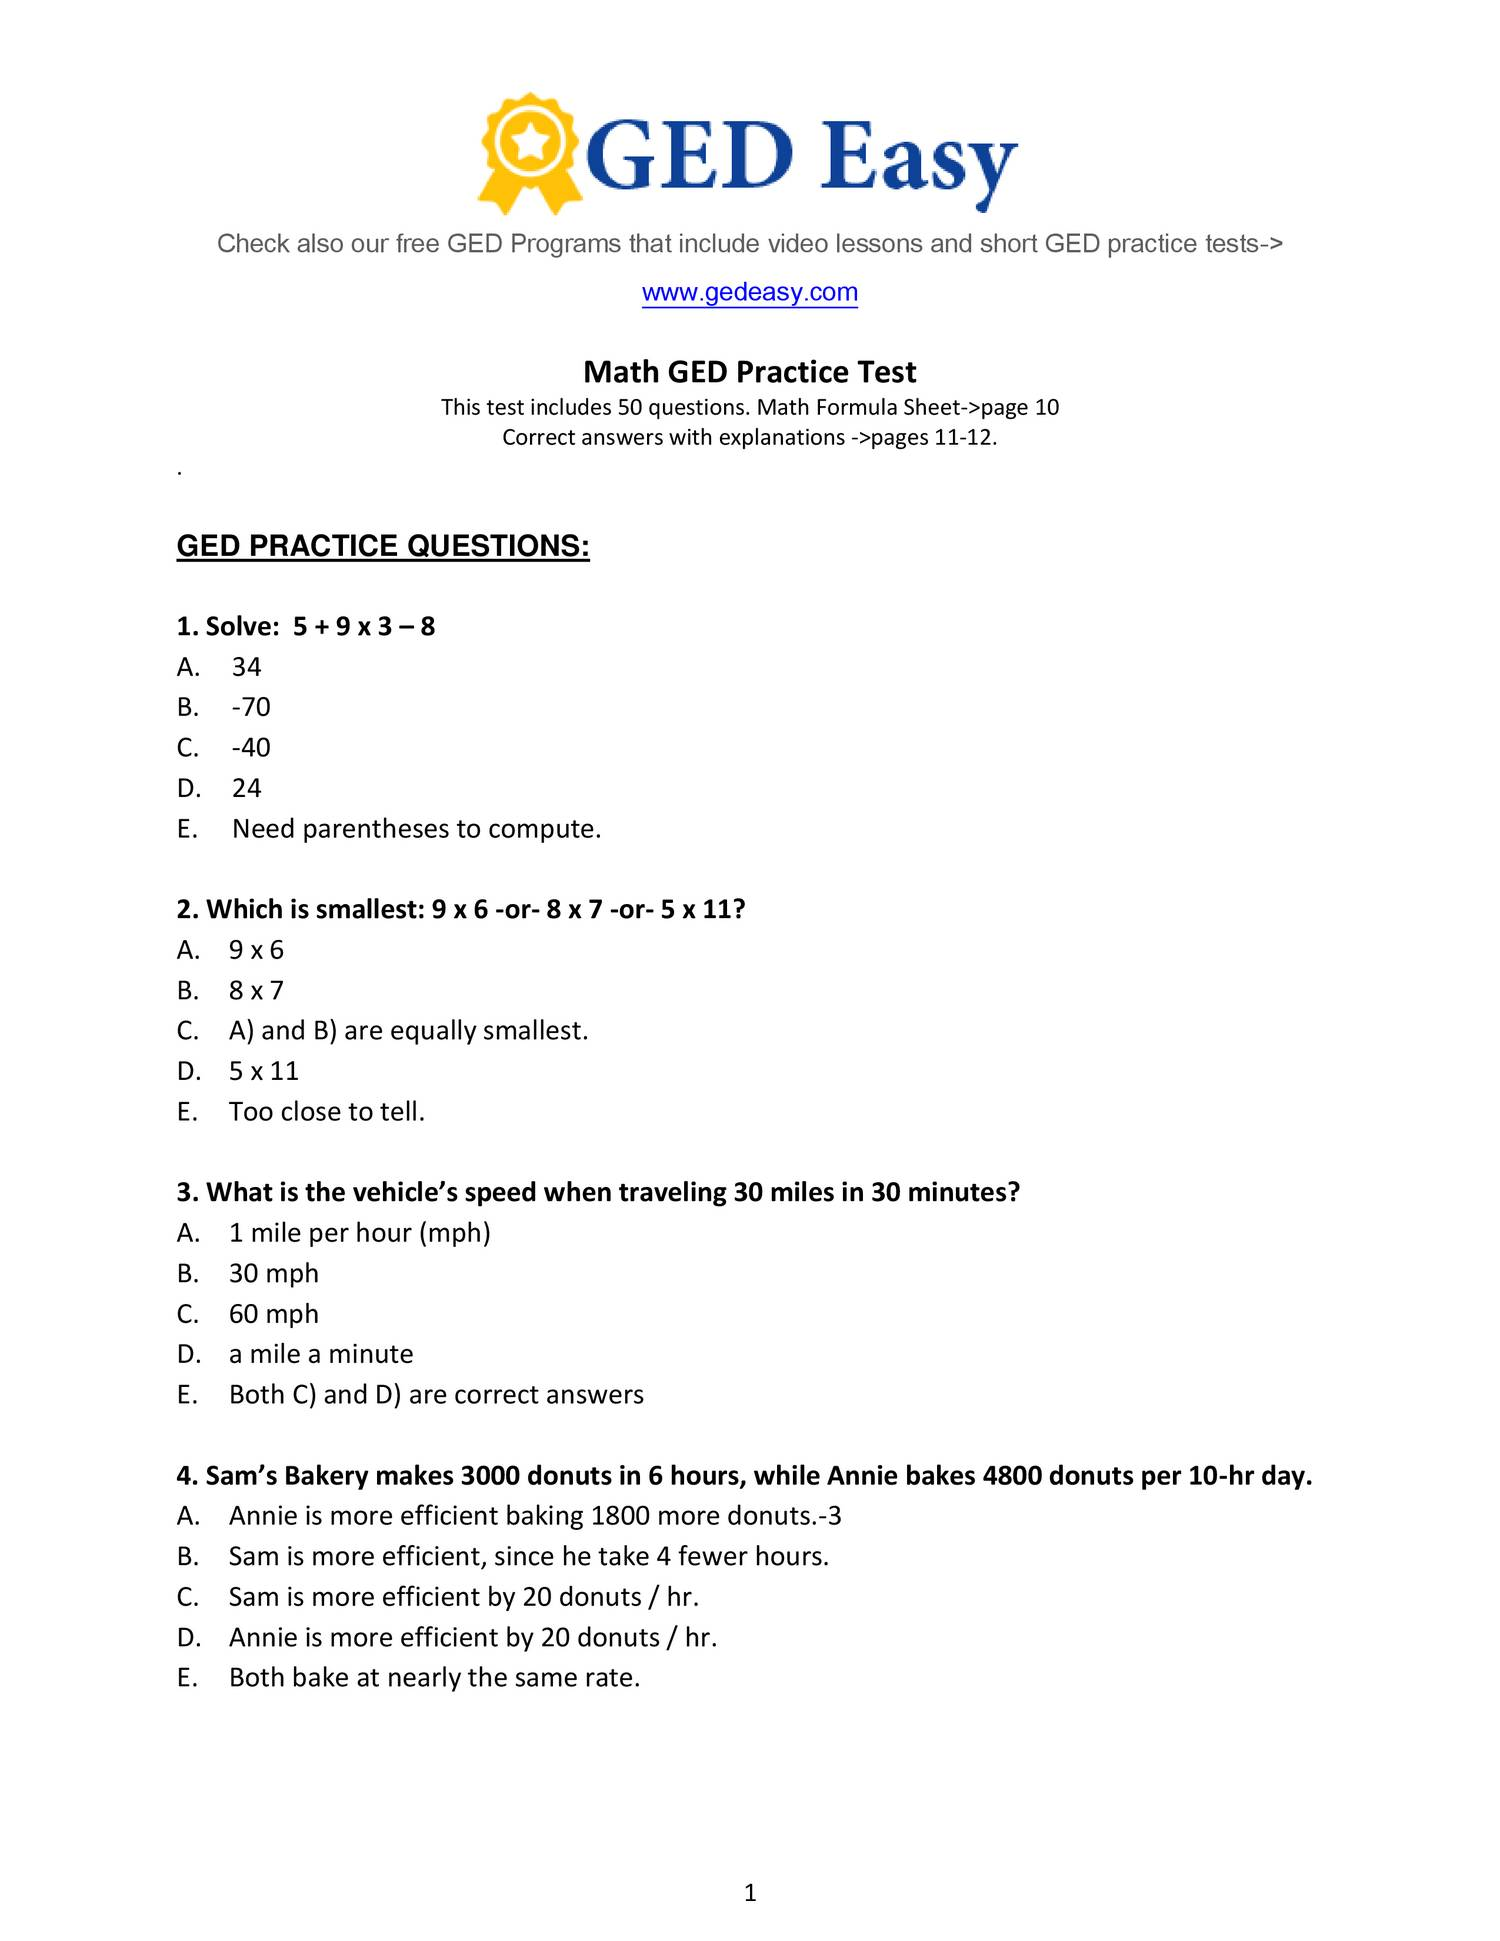 Comprehensive image with ged printable practice tests